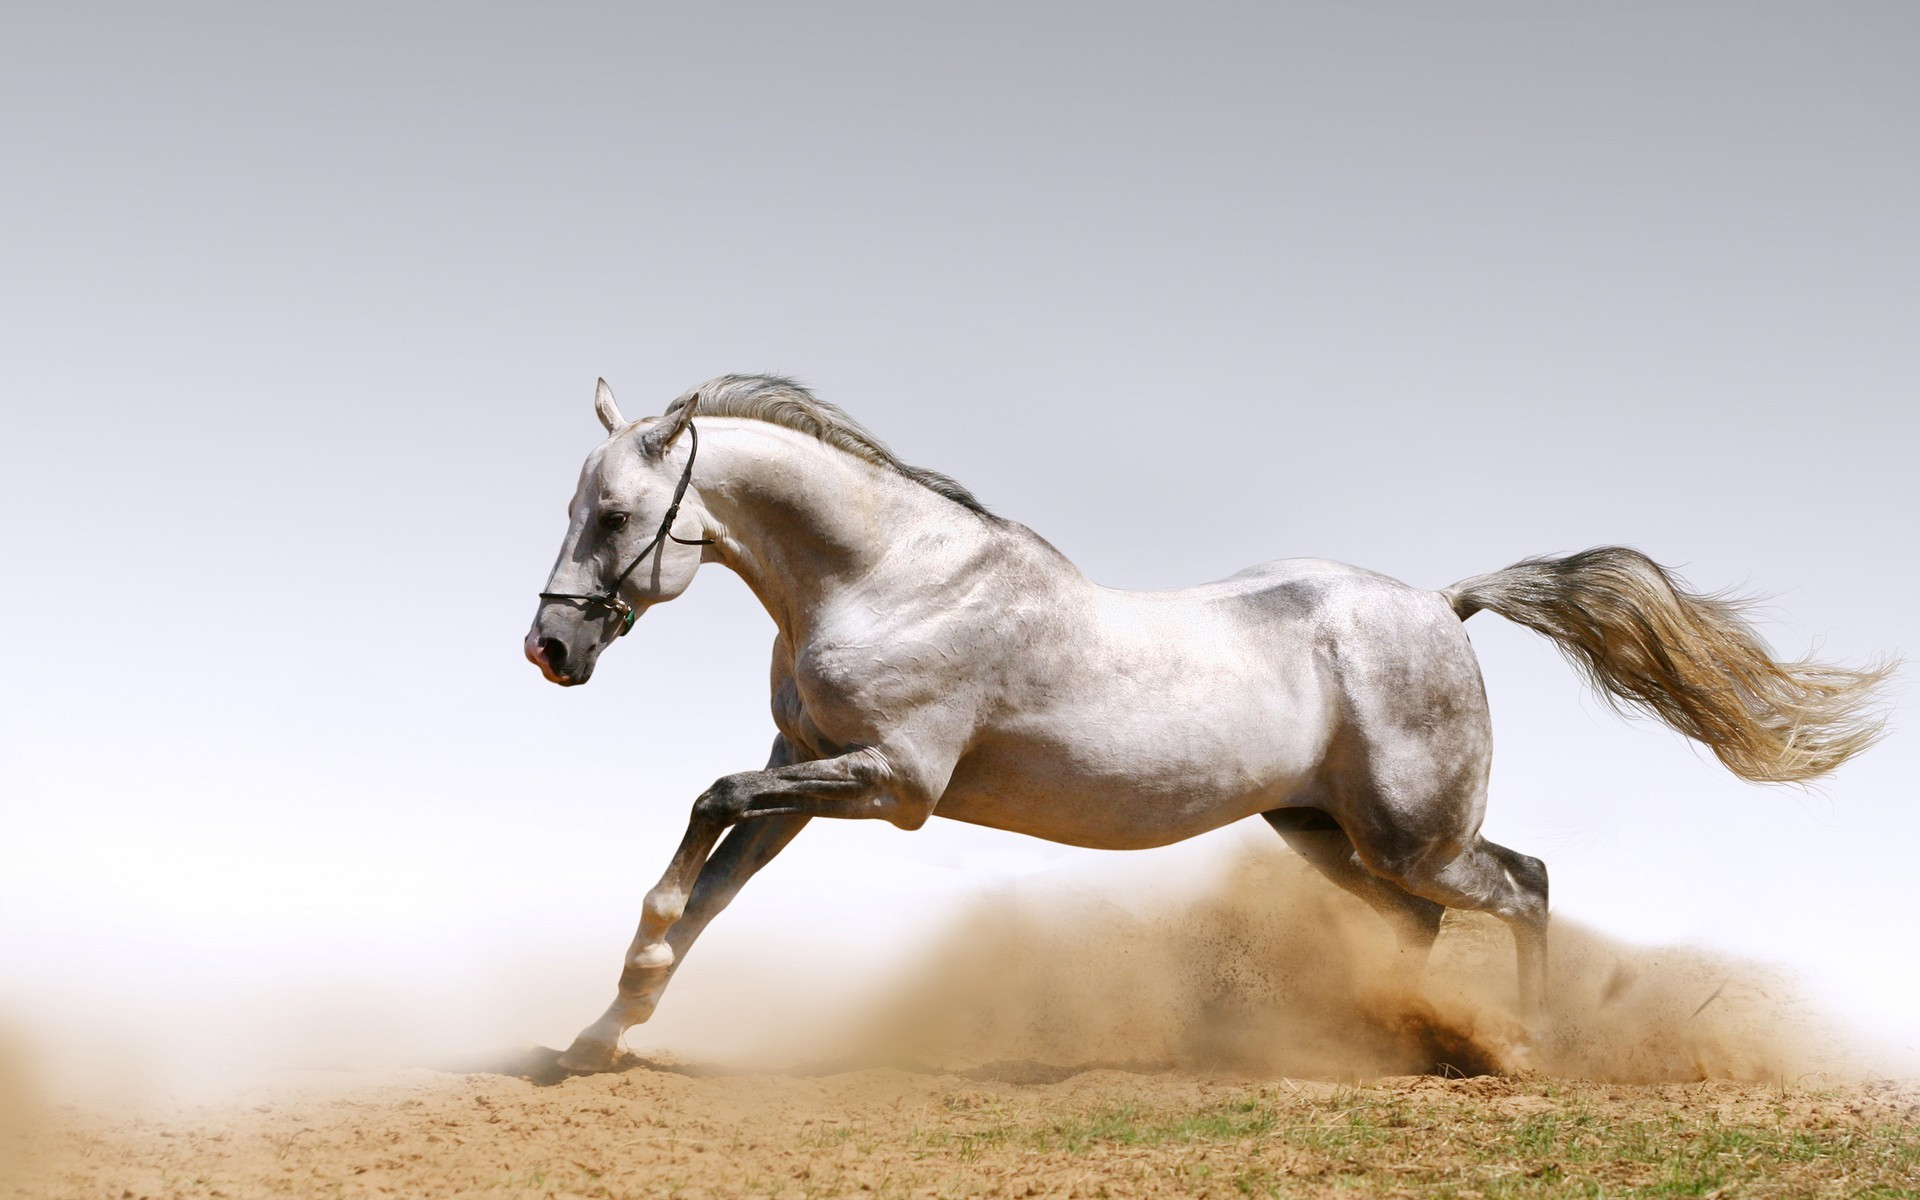 Use 9 Beautiful White Running Horse Wallpapers for your Desktop Background.  You can Share below White Horses Running Wallpapers for Desktop .